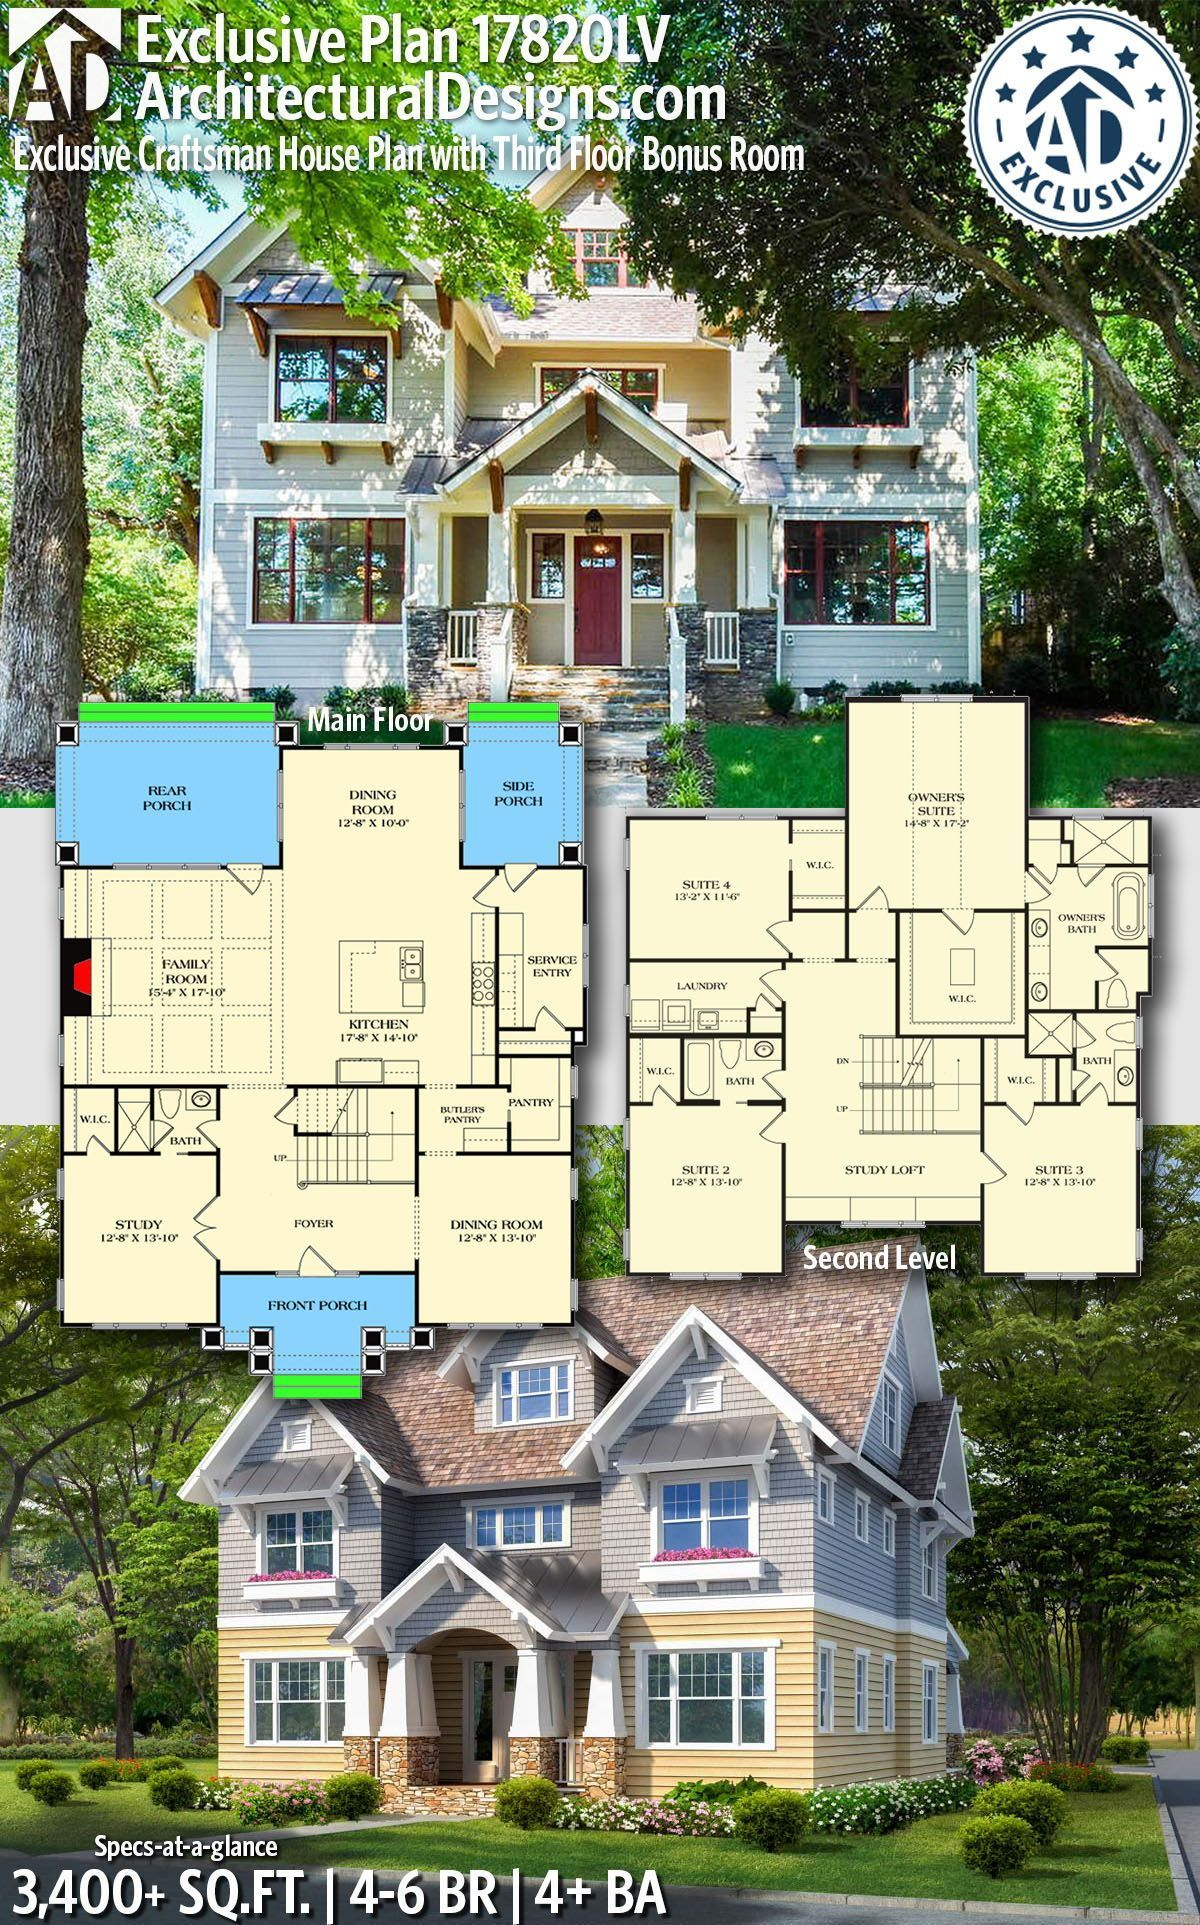 Plan 17820lv Exclusive Craftsman House Plan With Third Floor